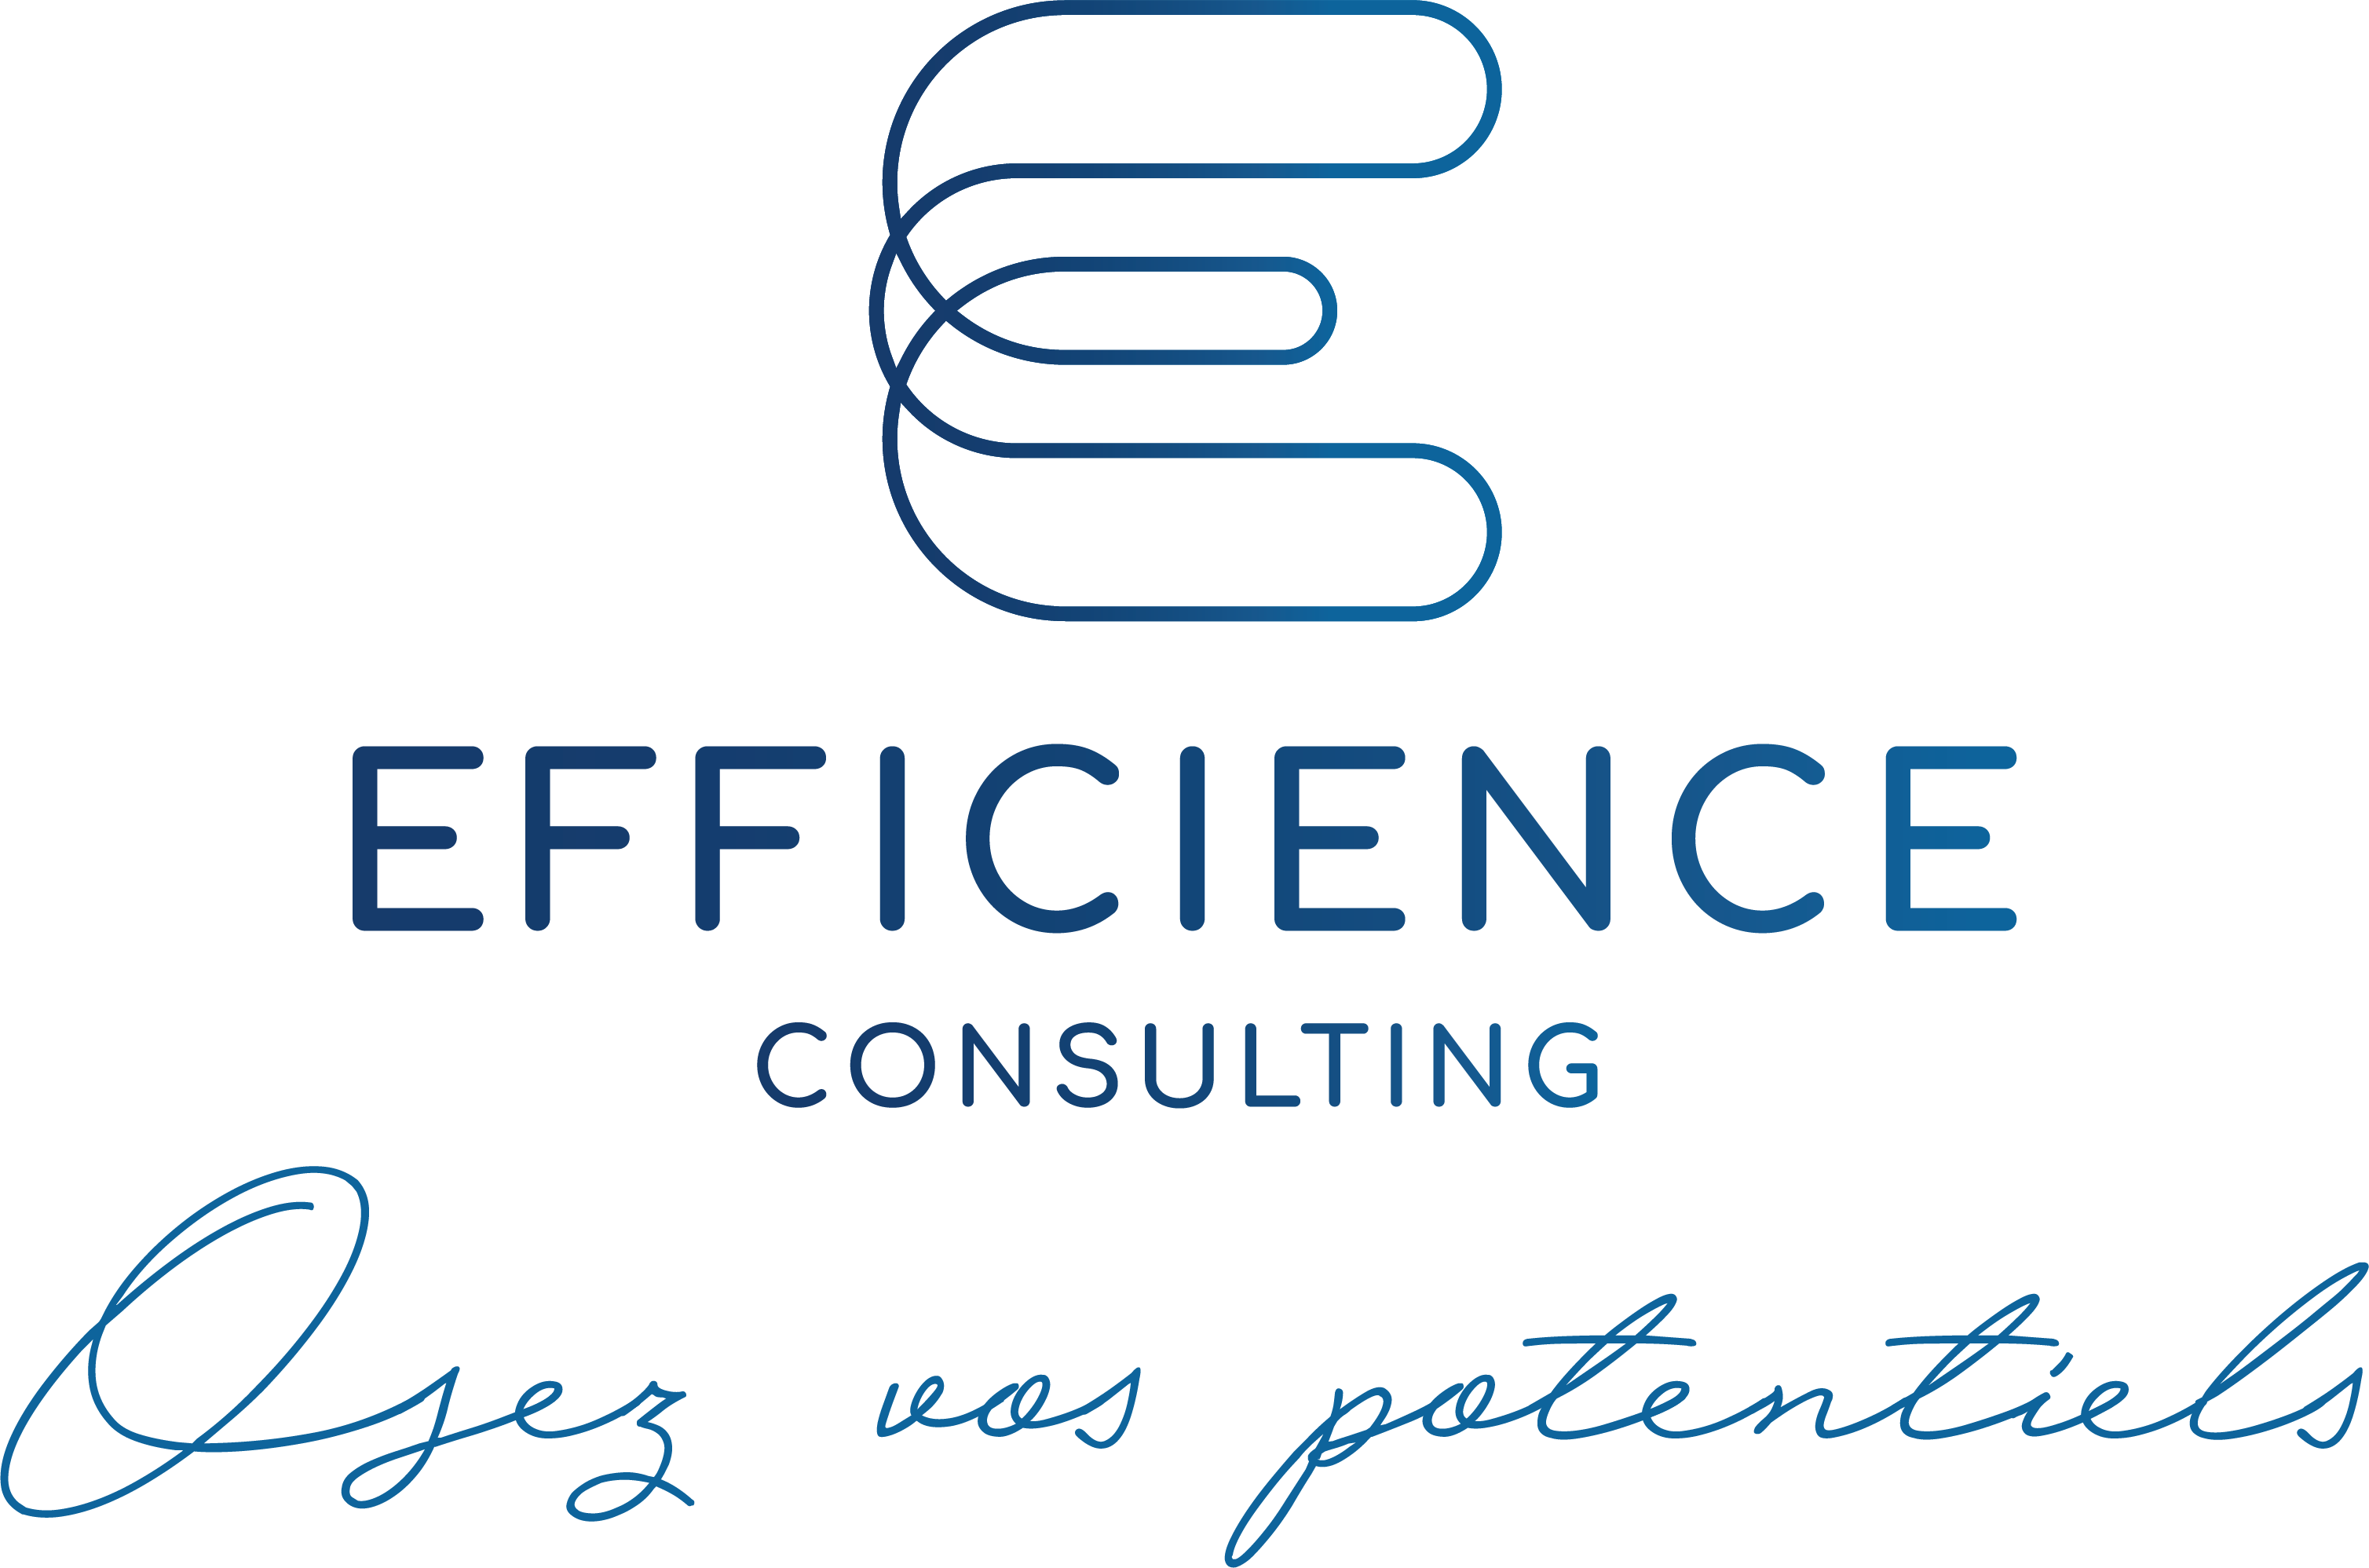 Centre EFFICIENCE CONSULTING - Paris 8ème (75)